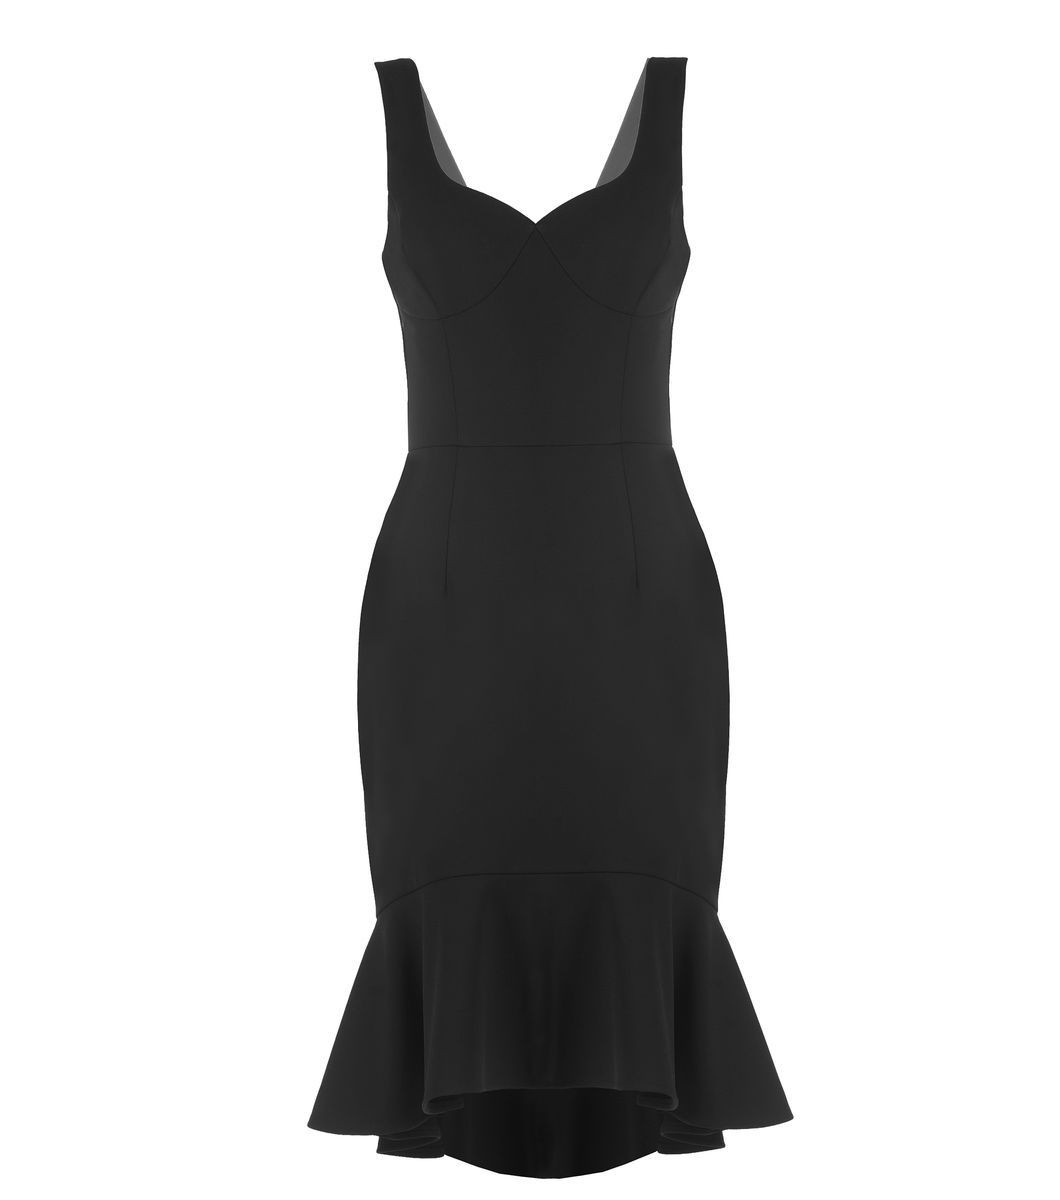 The Seductive Lover Dress